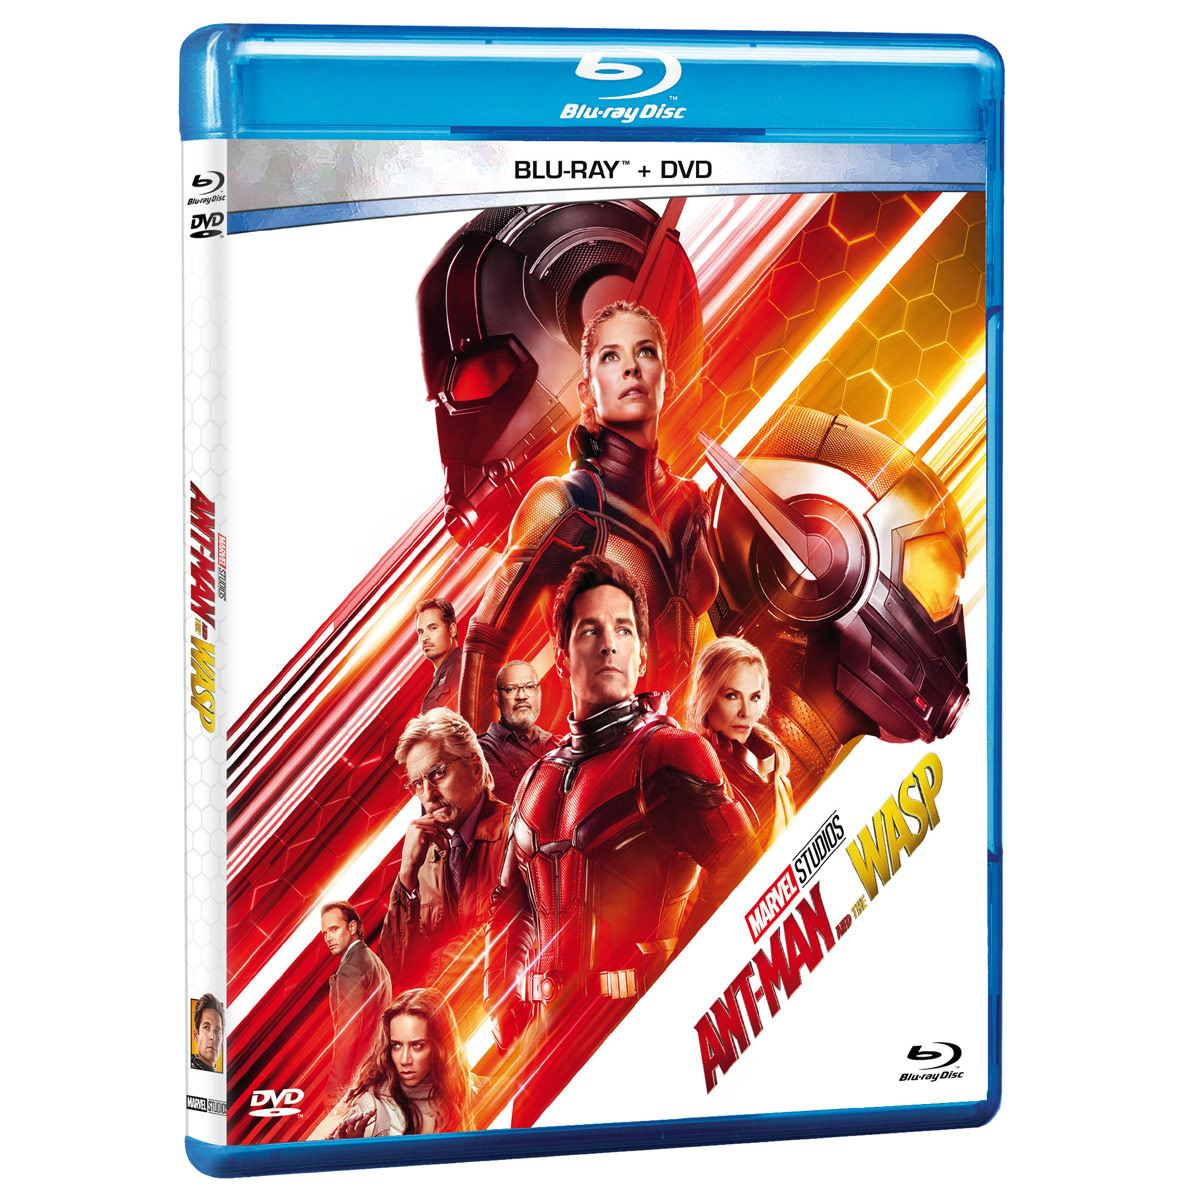 DVD/BR Antman and the Wasp